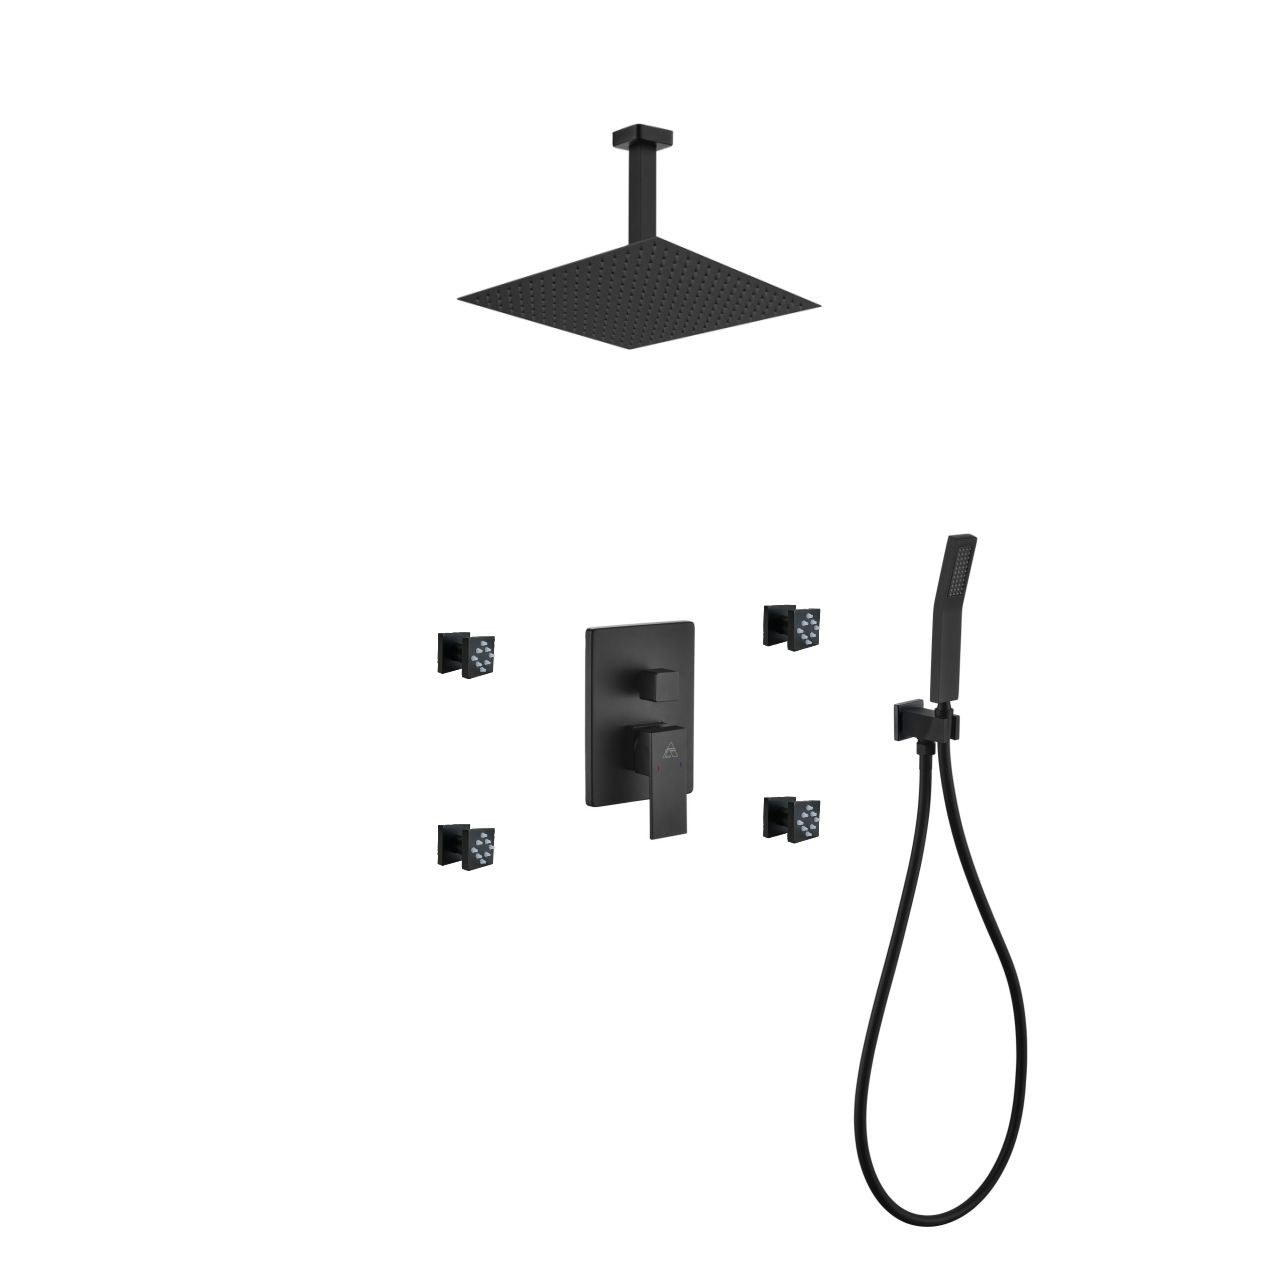 Aqua Piazza Matte Black Shower Set With 12 Ceiling Mount Square Rain Shower 4 Body Jets And Handheld